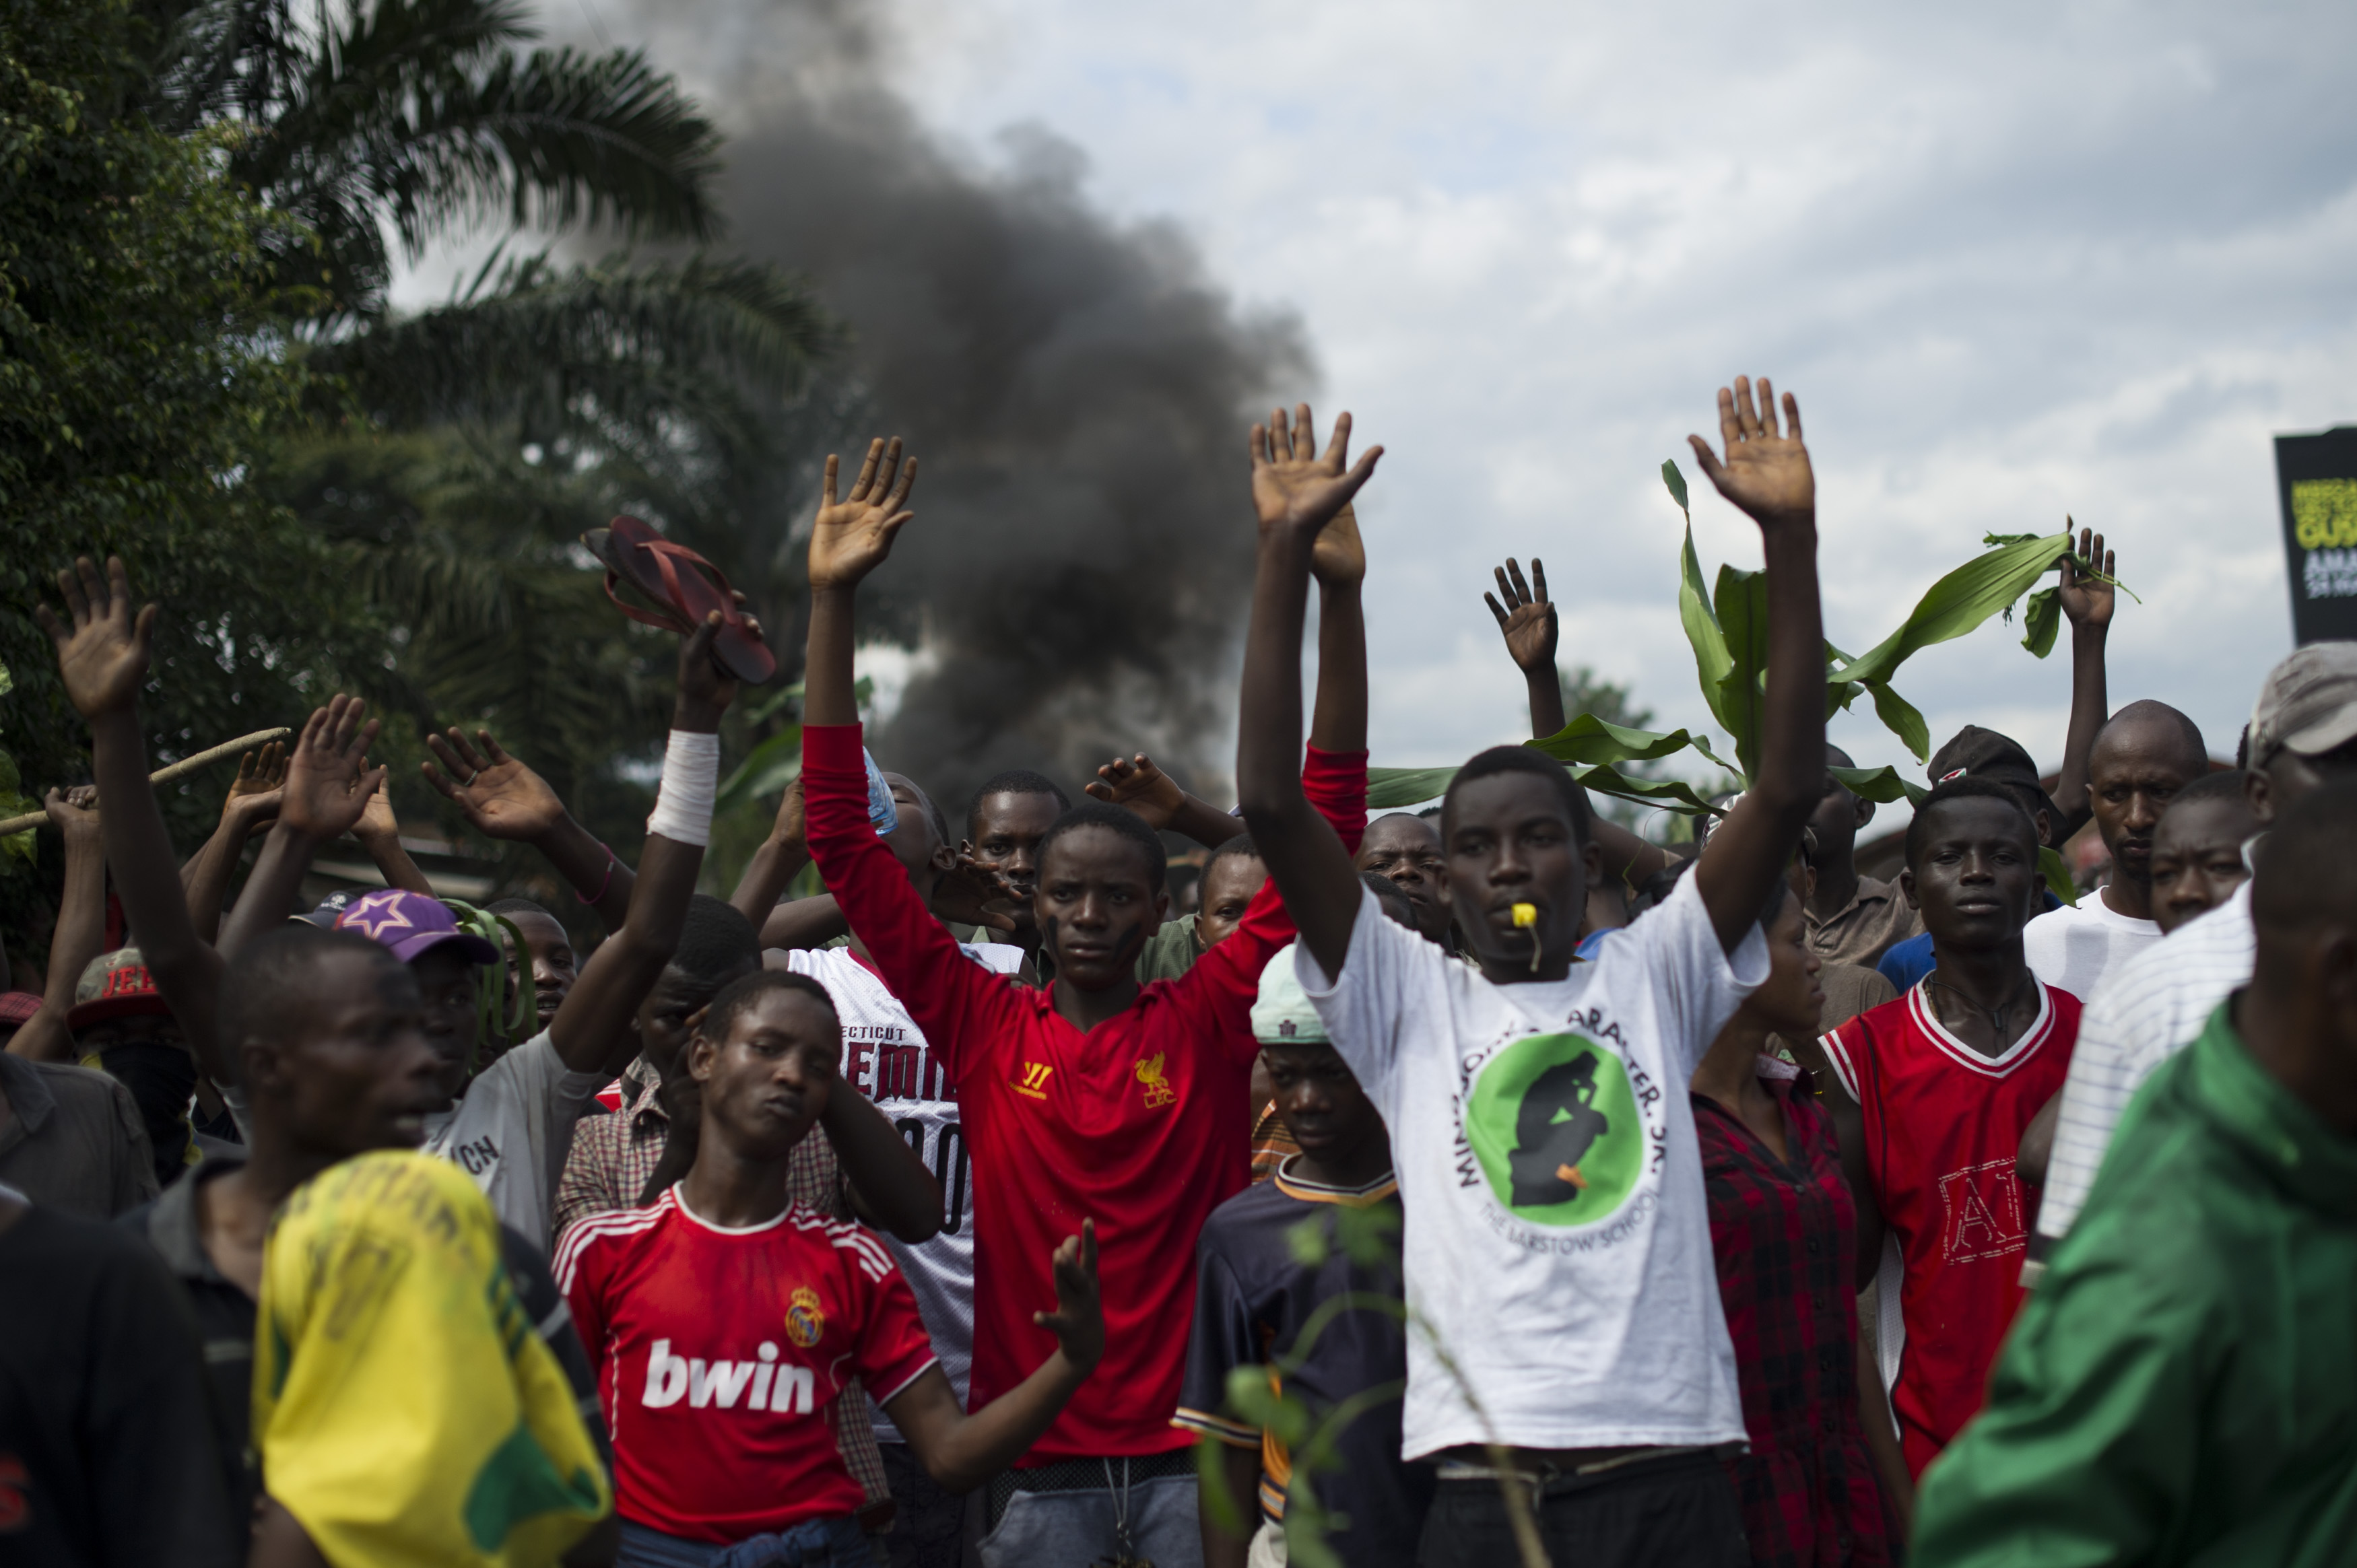 Protestors raise their hands in front of police in the Musaga neighbourhood of Bujumbura, Burundi, on May 4, 2015.